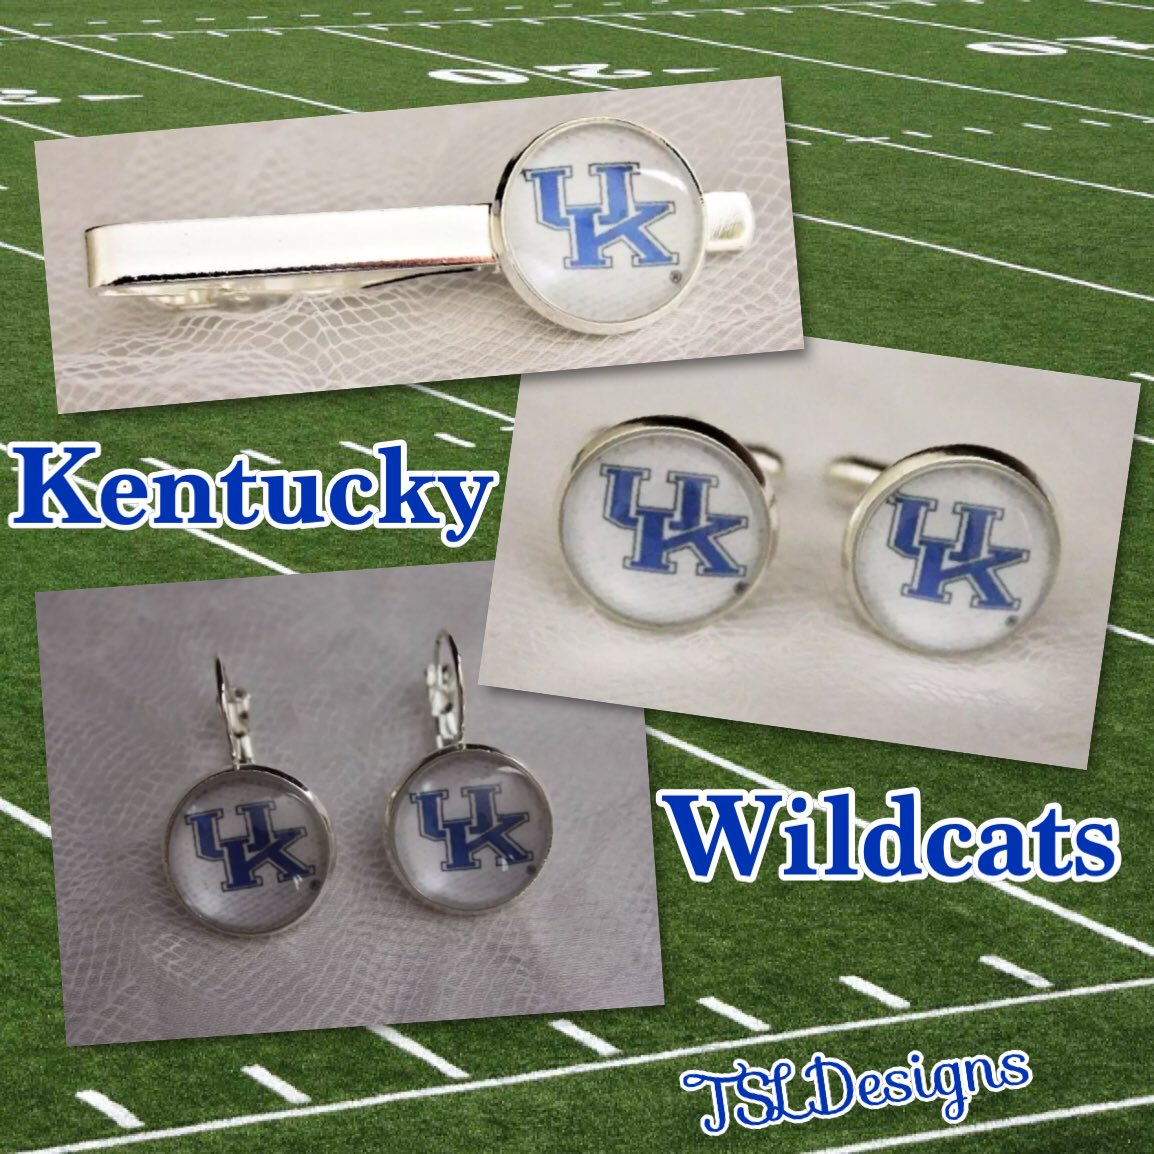 #NCAA #CollegeFootball #Kentucky #Wildcats merchandise made with #upcycled #tradingcards  http:// stores.ebay.com/tlsdesignsandv intage &nbsp; …  #wildcatsfootball #ebay<br>http://pic.twitter.com/tld1CuS1fO